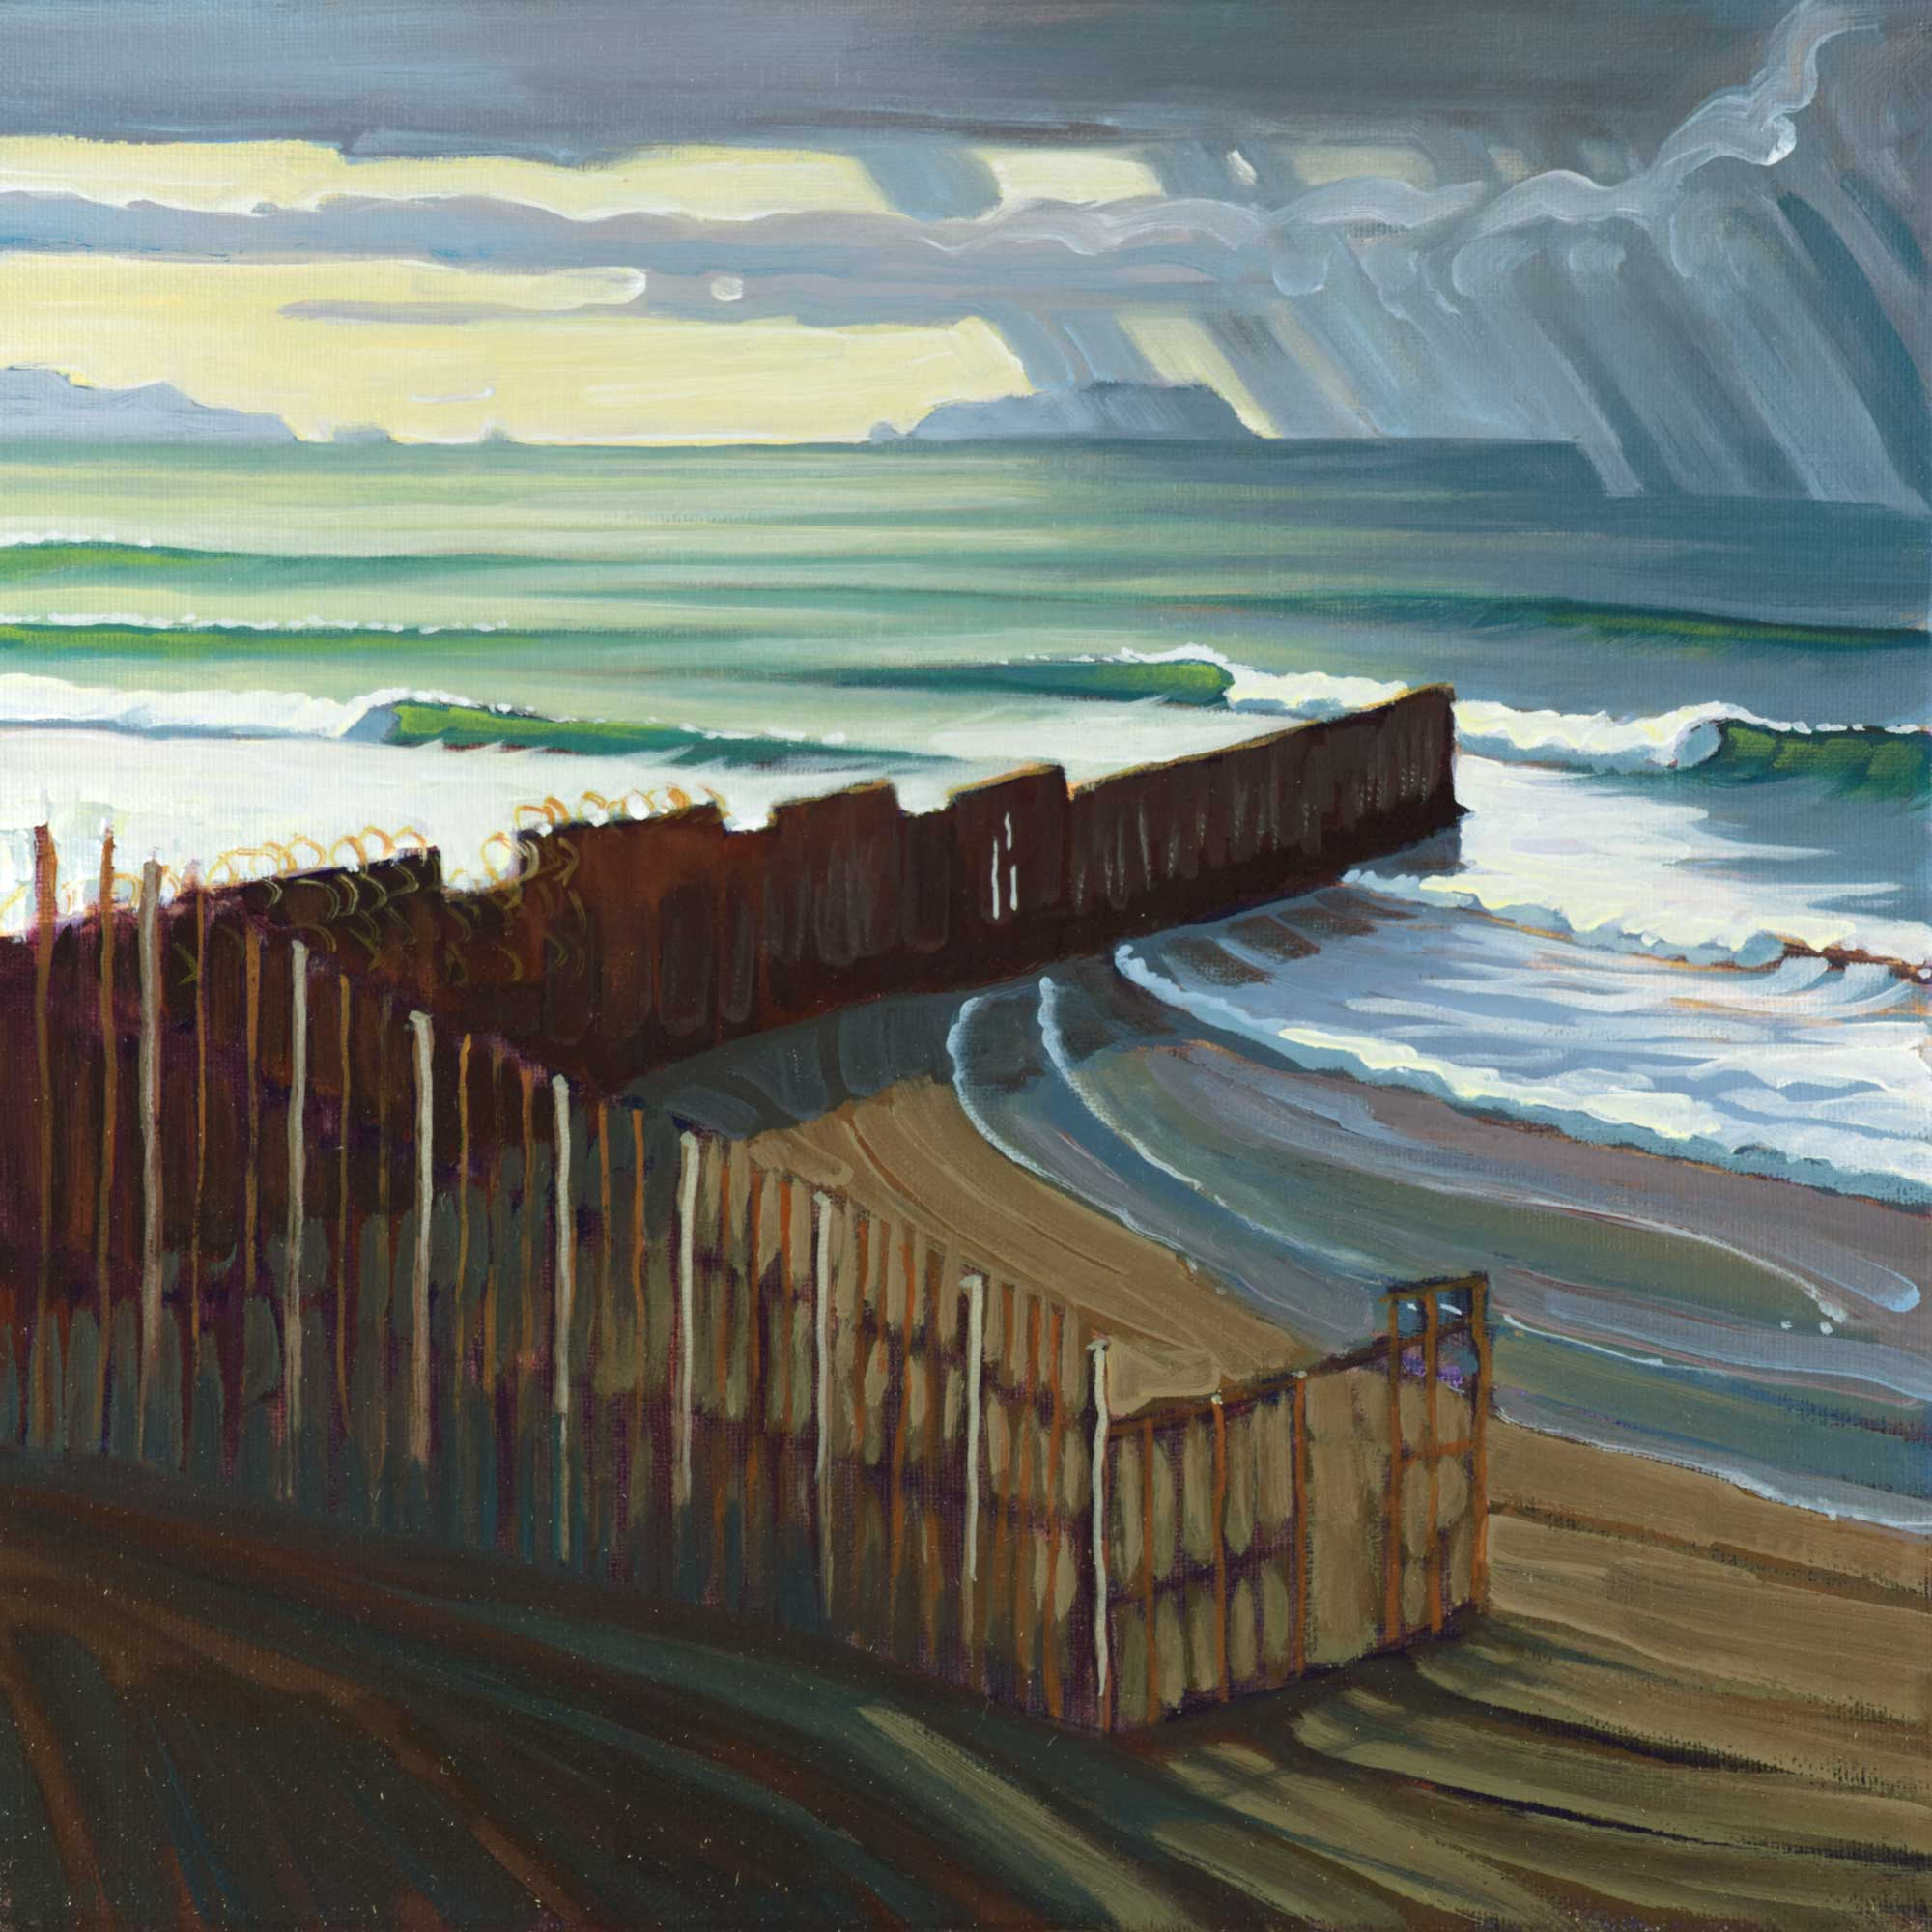 Plein air artwork the border fence between California and Mexico in San Diego county on the coast of southern California